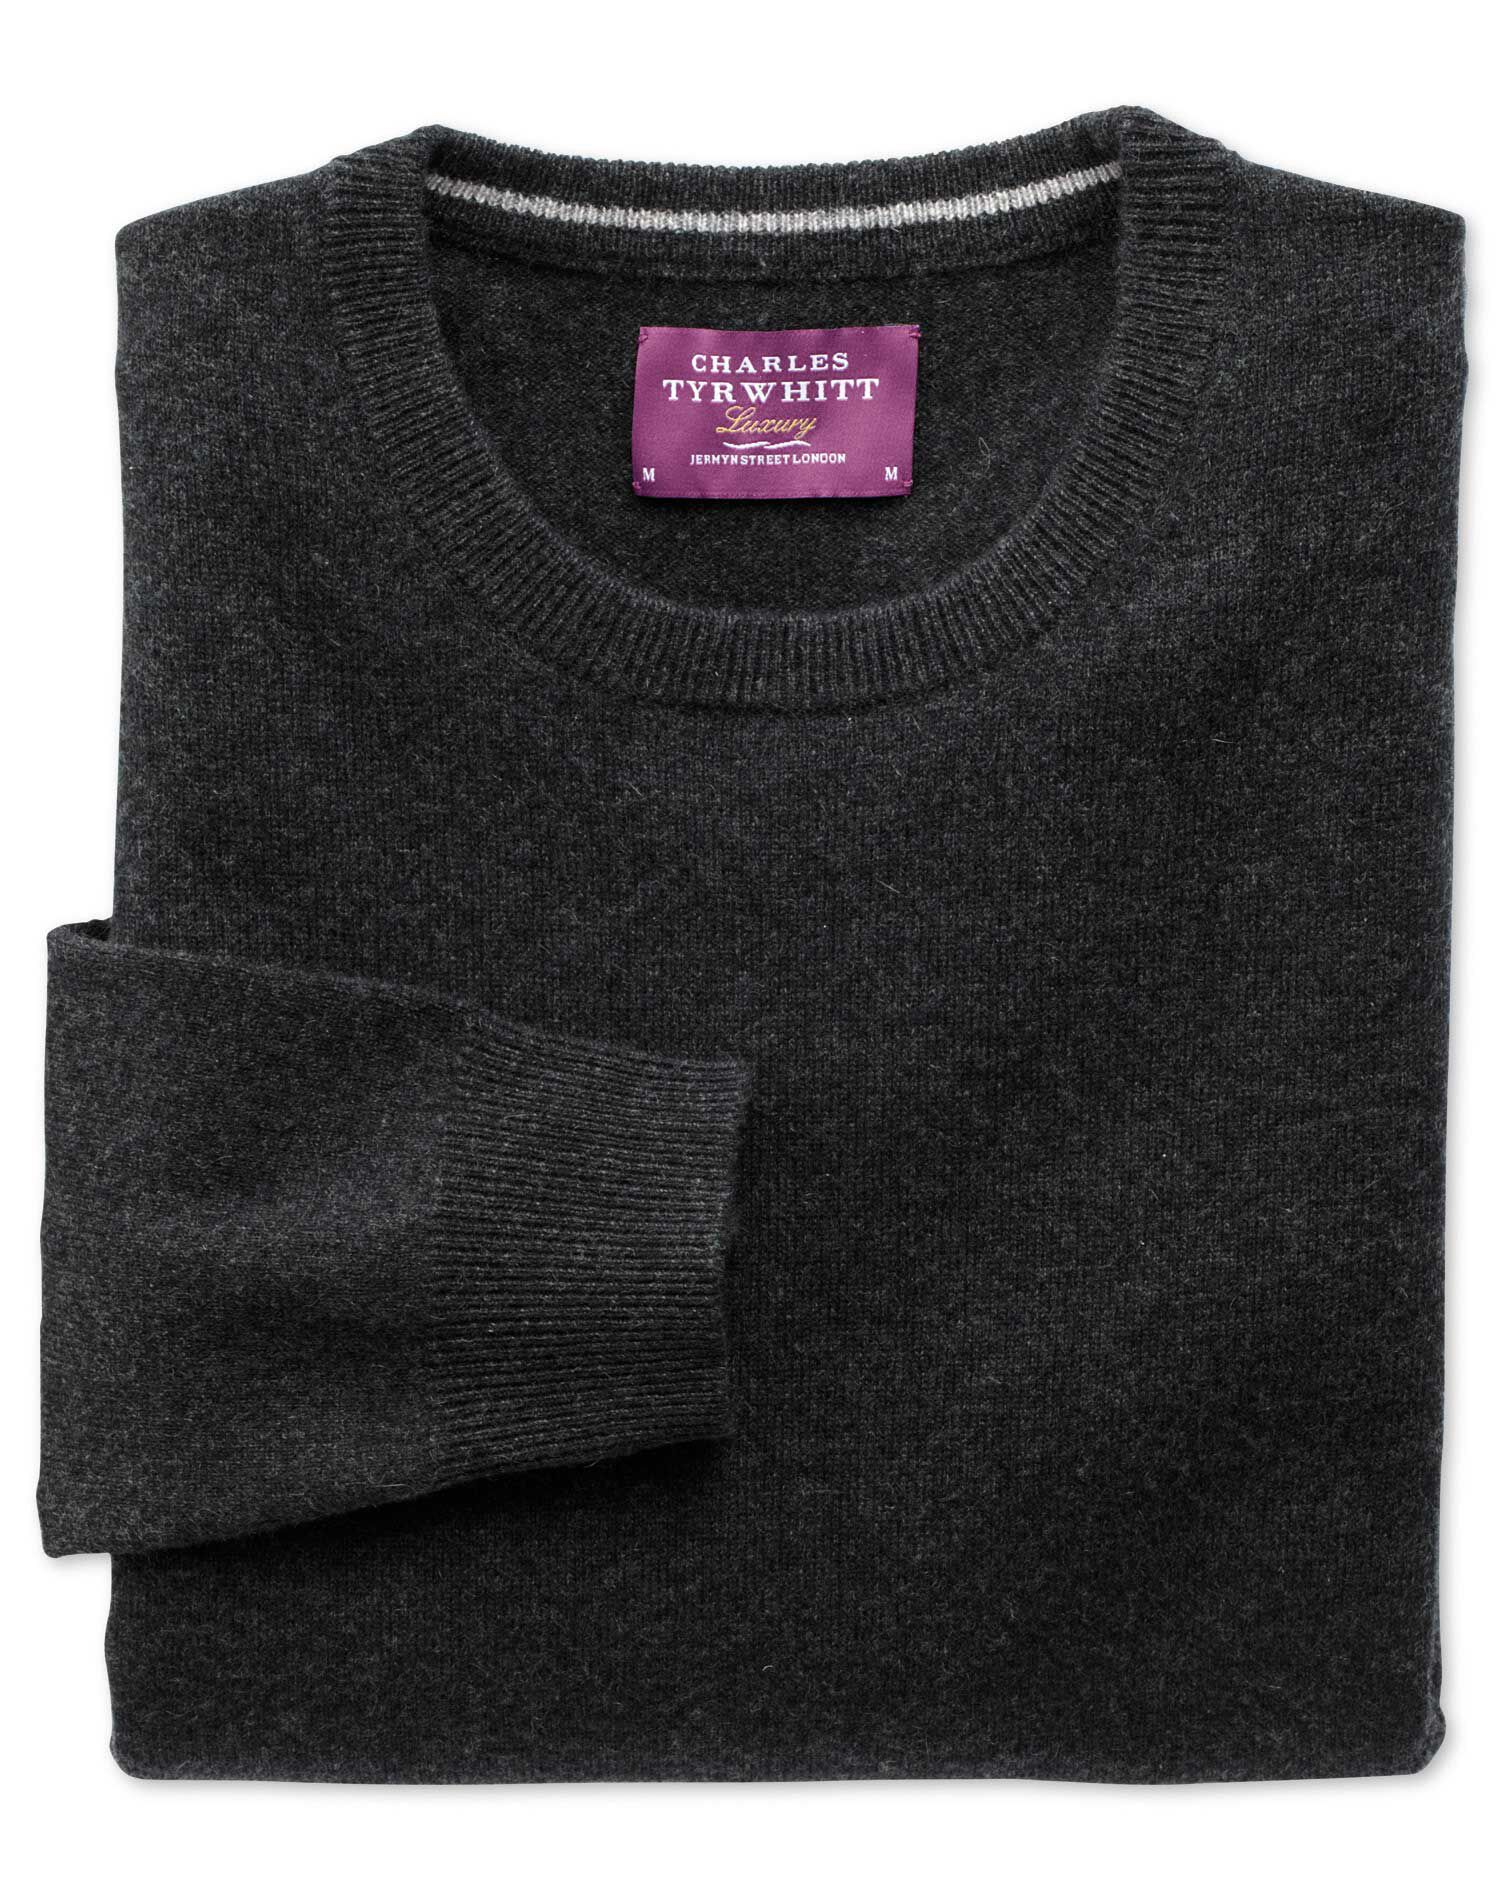 Charcoal Cashmere Crew Neck Jumper Size XS by Charles Tyrwhitt